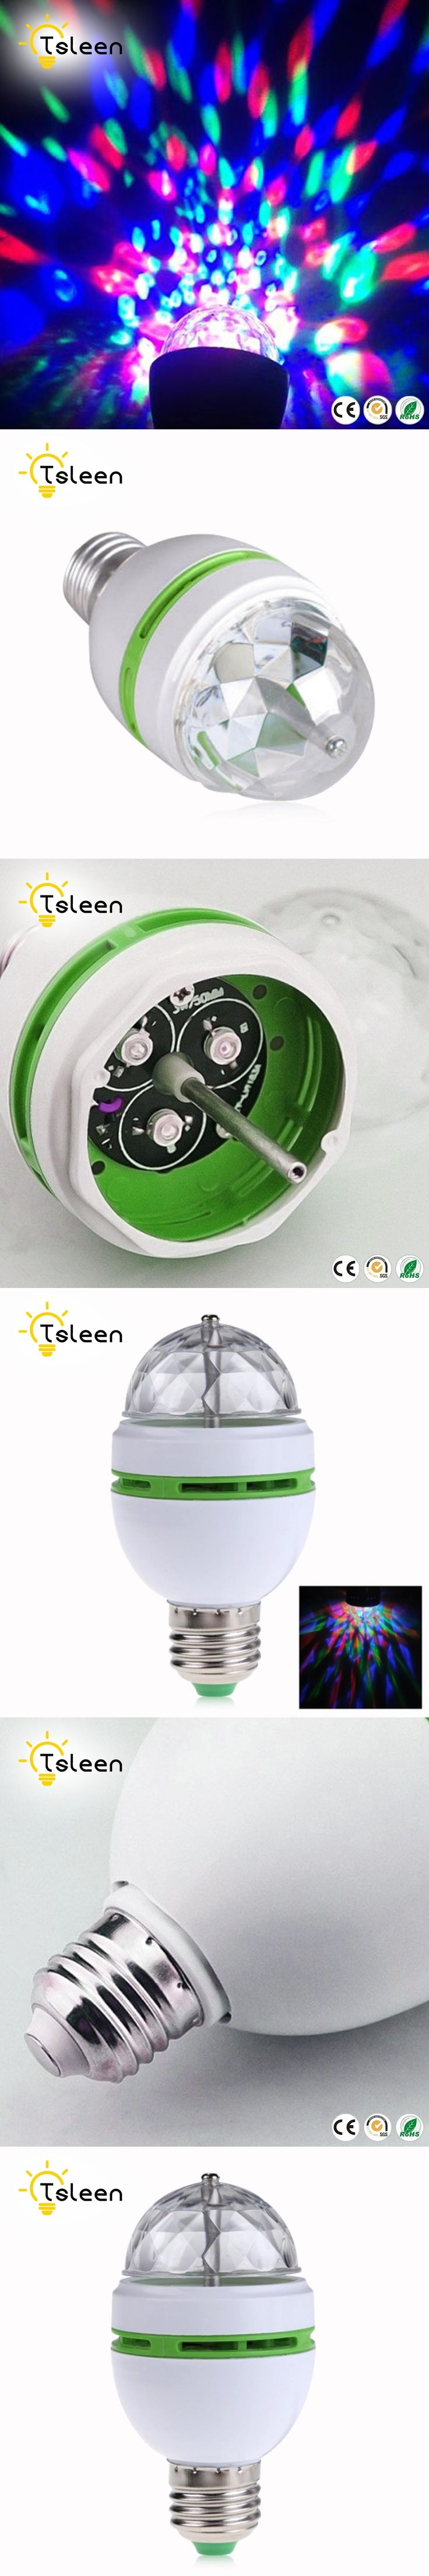 TSLEEN E27 3W RGB Crystal Auto Rotating LED Bulb Stage Light Disco DJ Party Lamp Holiday Bulb With Convertor Holder Socket Base